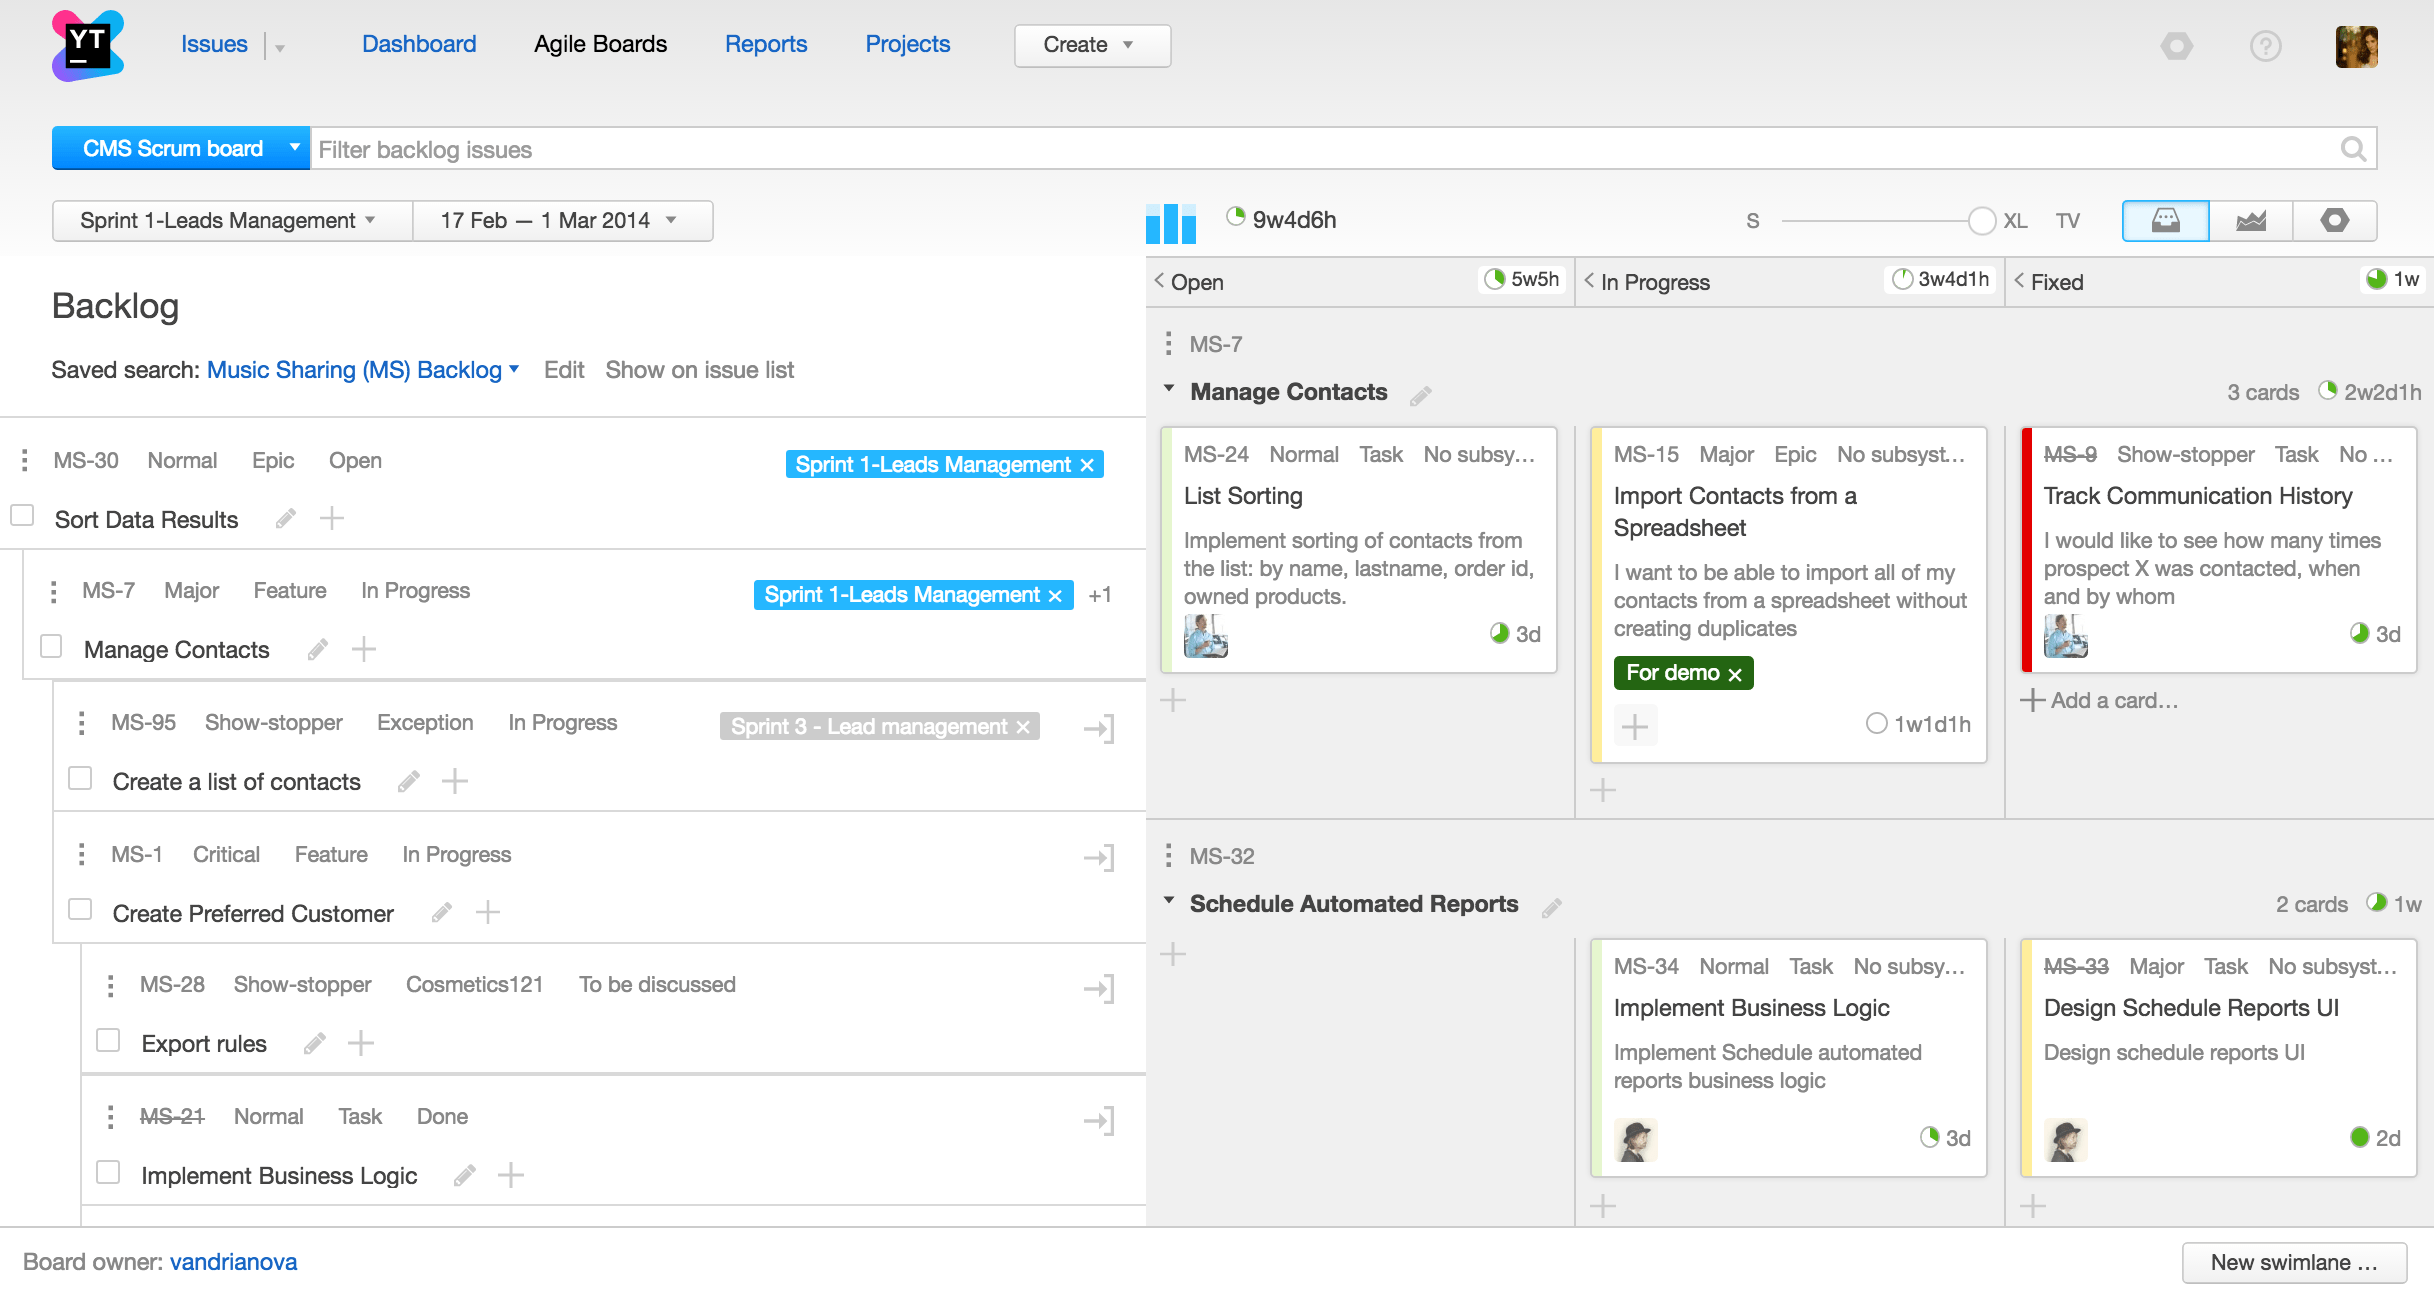 youtrack issue tracking and project management tool for software teams